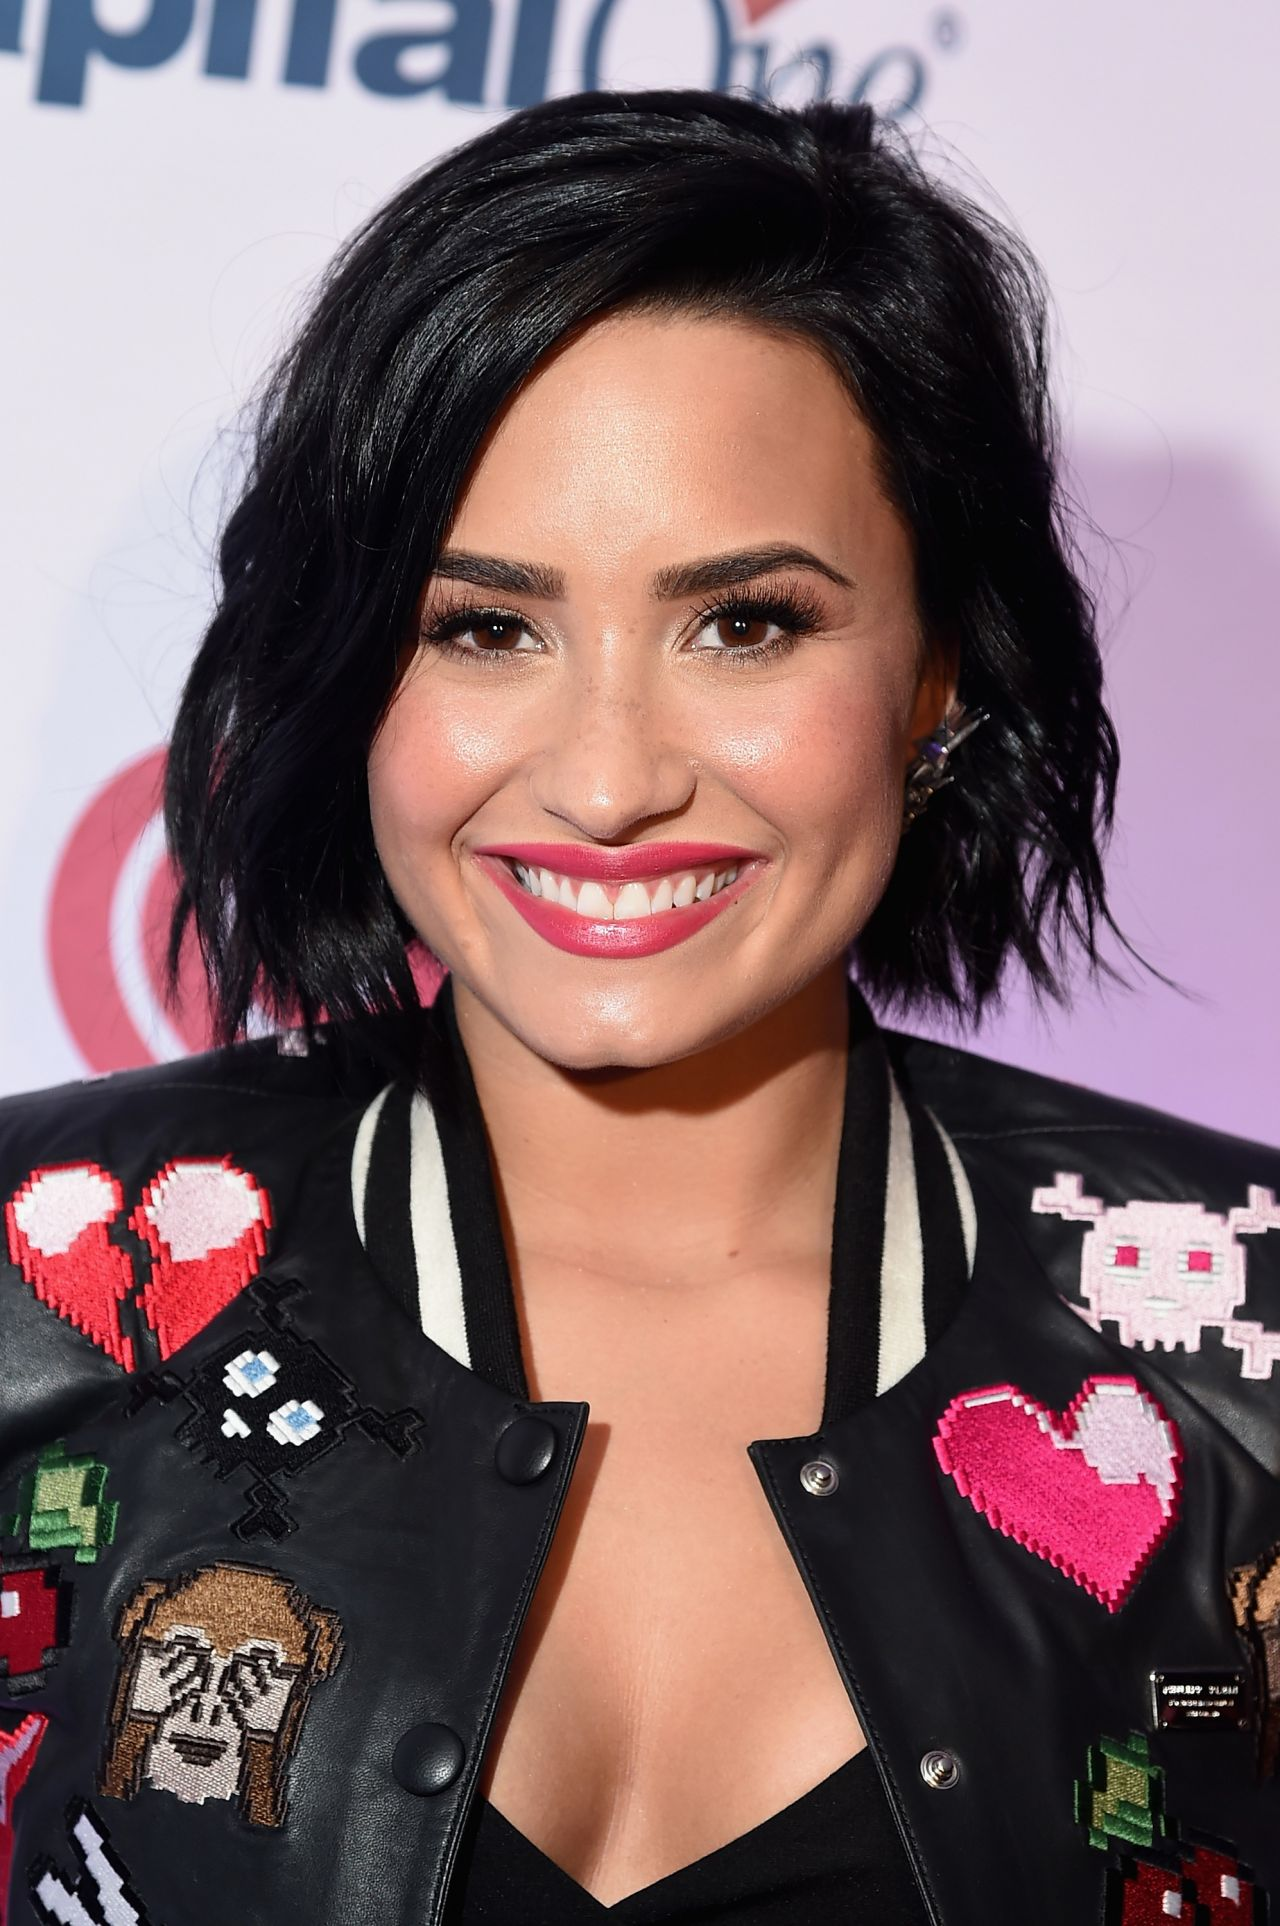 Demi Lovato Sexiest Instagram Pictures: Hot 99.5's Jingle Ball 2015 In Washington, DC